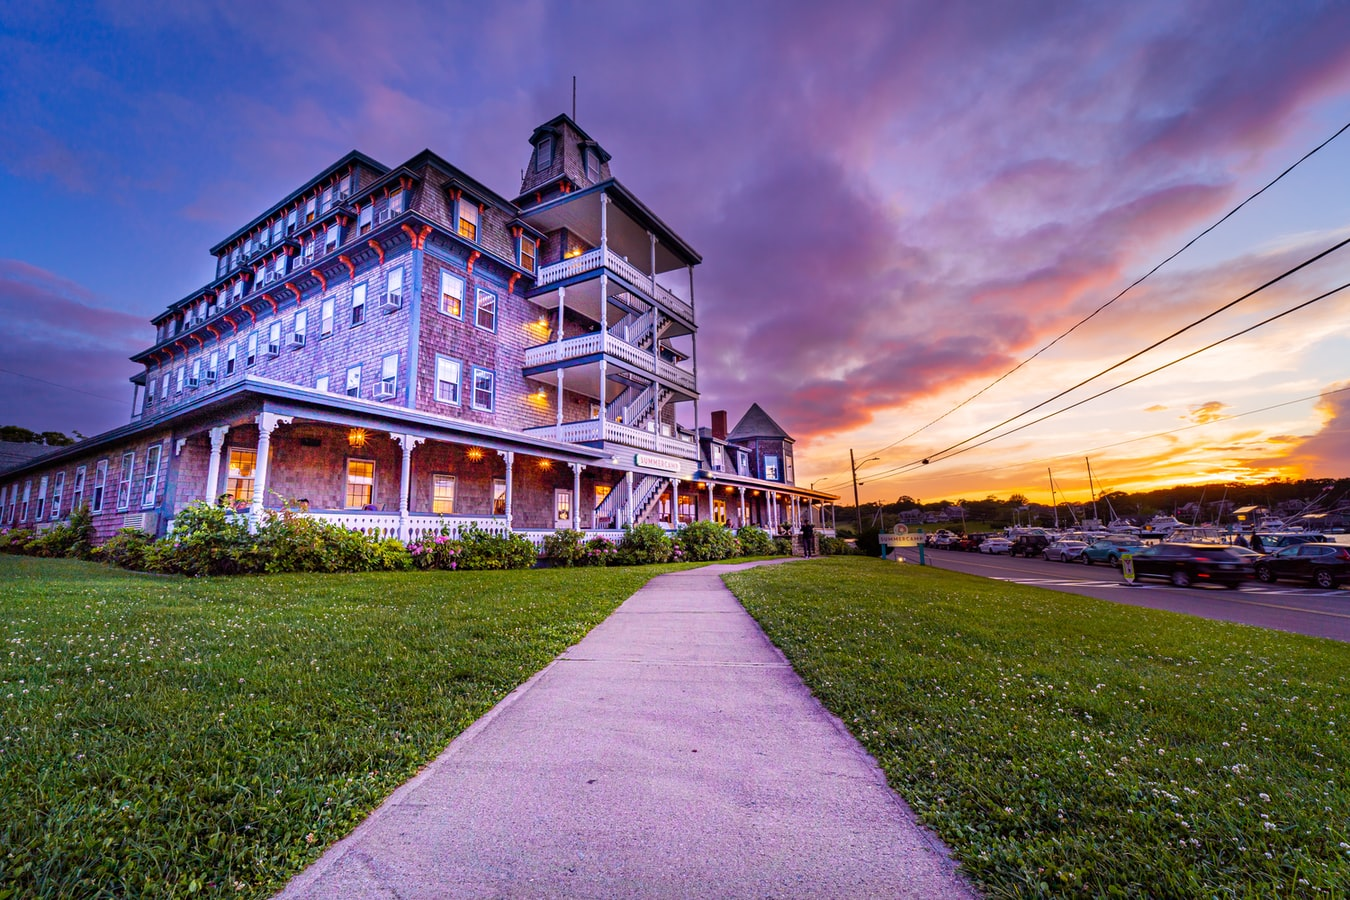 Building with sunset in Martha's Vineyard, MA